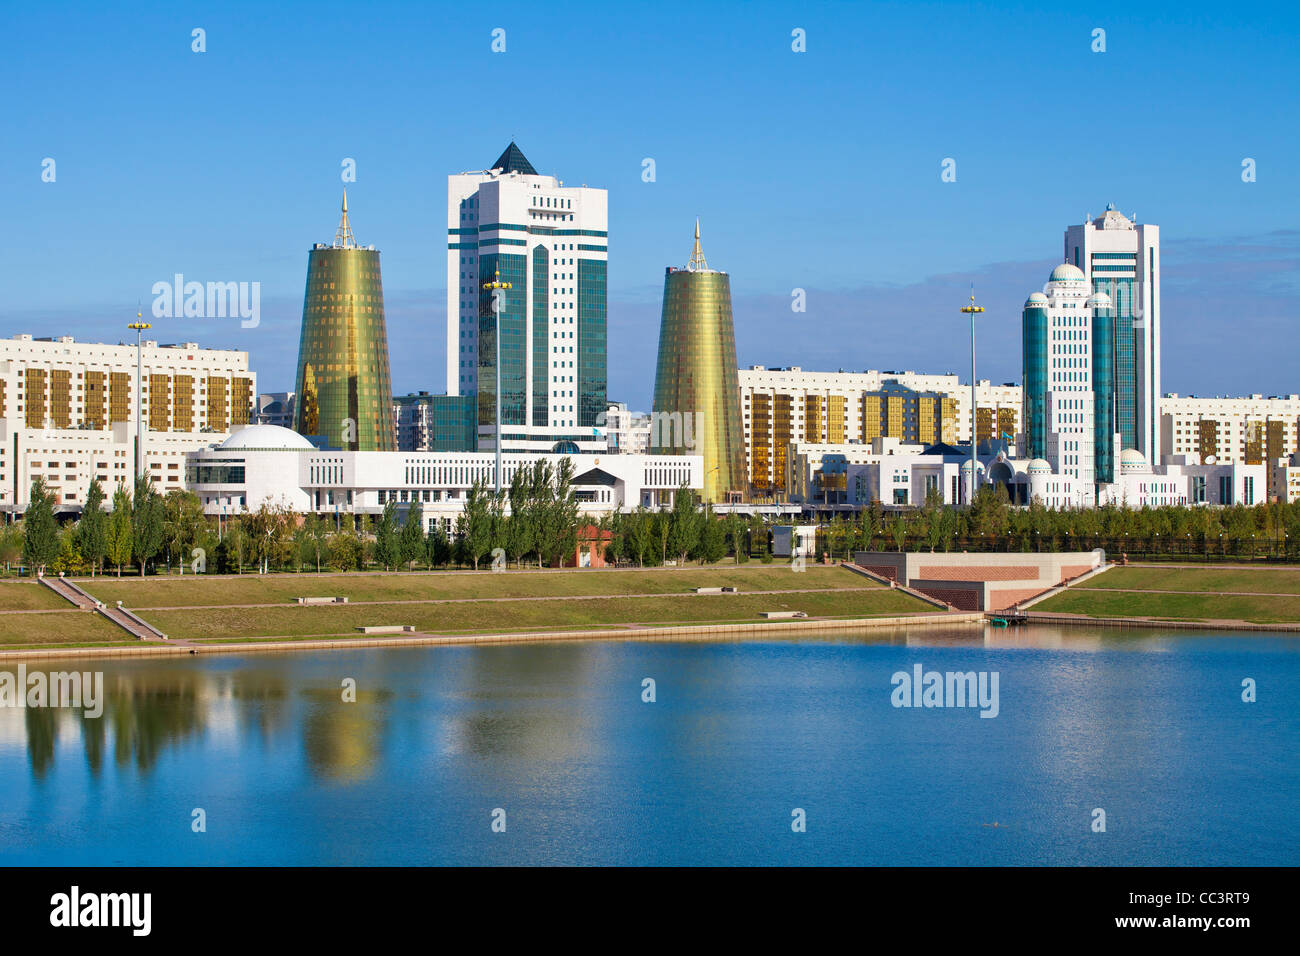 Kazakhstan, Astana, City skyline reflecting in Isahim River - Stock Image